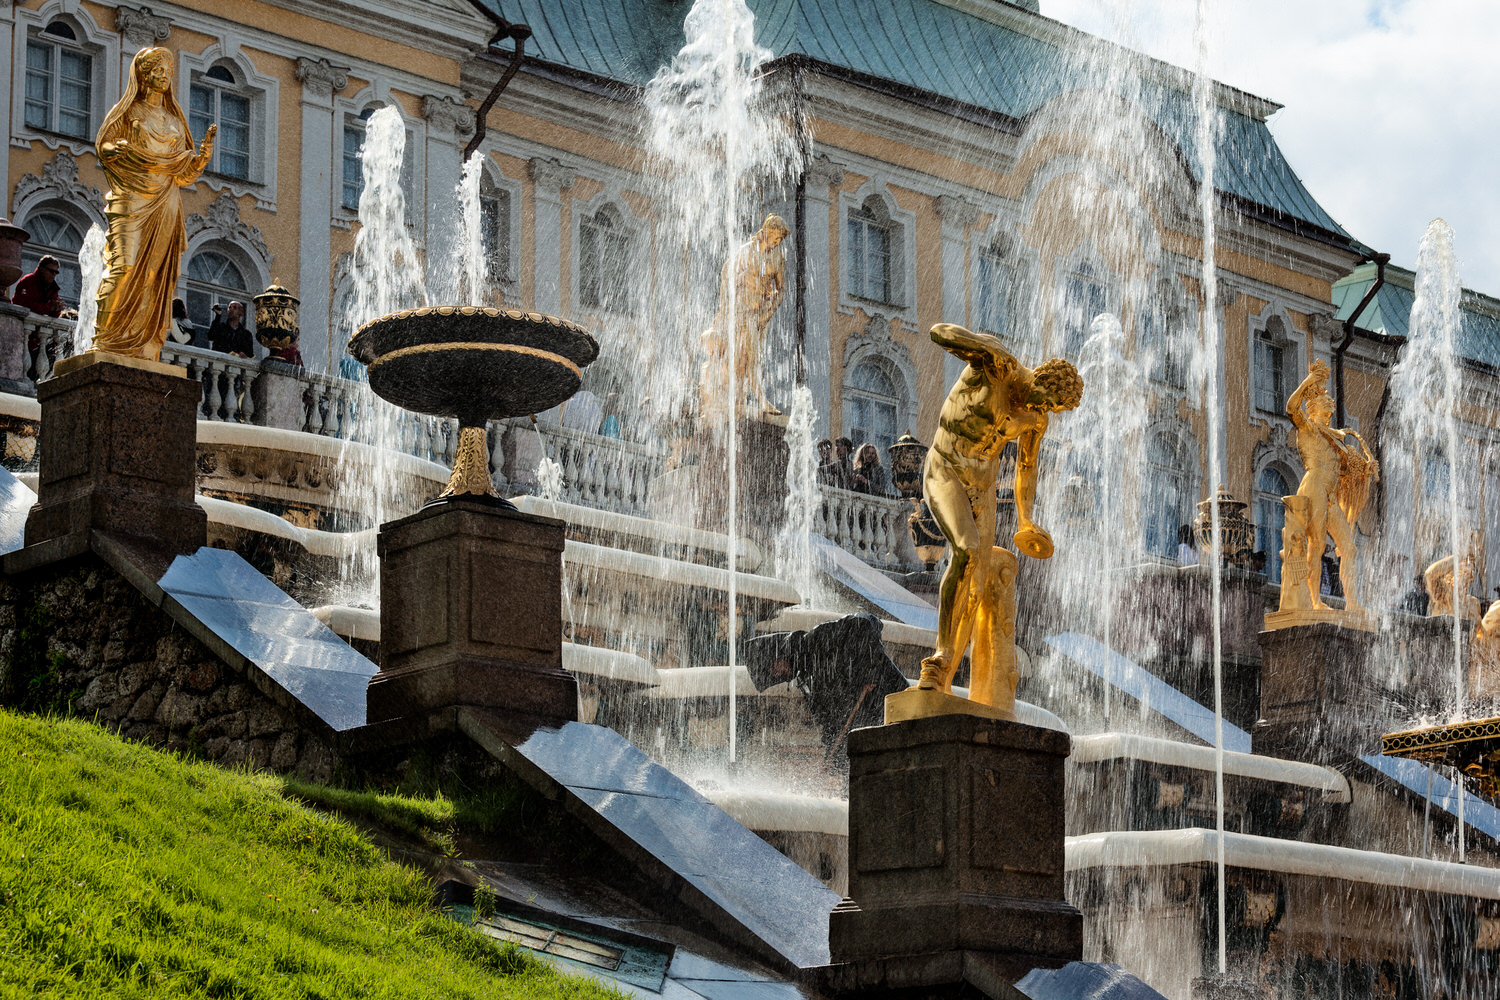 Water fountains and statues    at the fabulous    Grand Cascade    at    Peterhof Palace    near St. Petersburg, Russia.